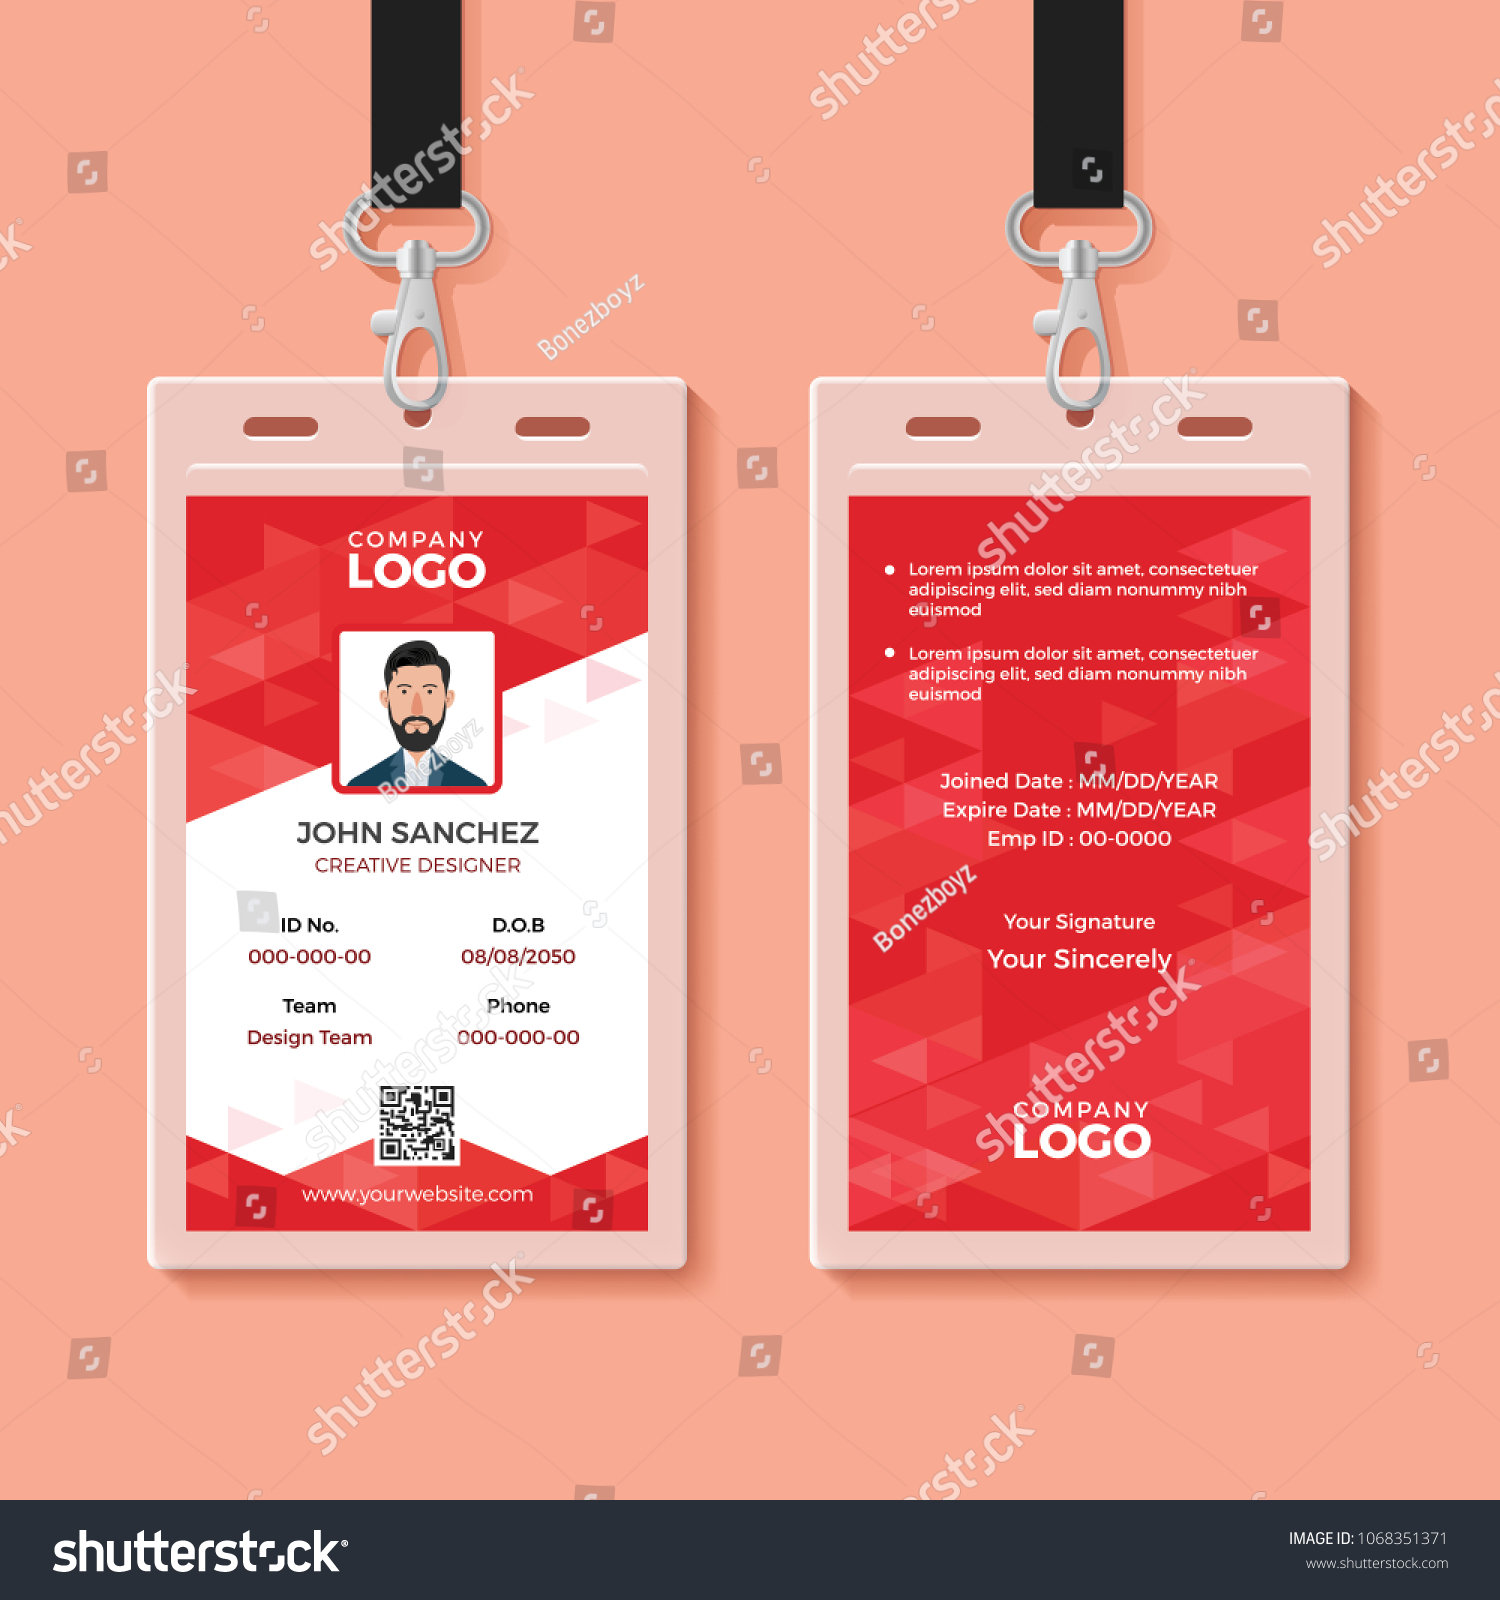 red corporate id card design template のベクター画像素材